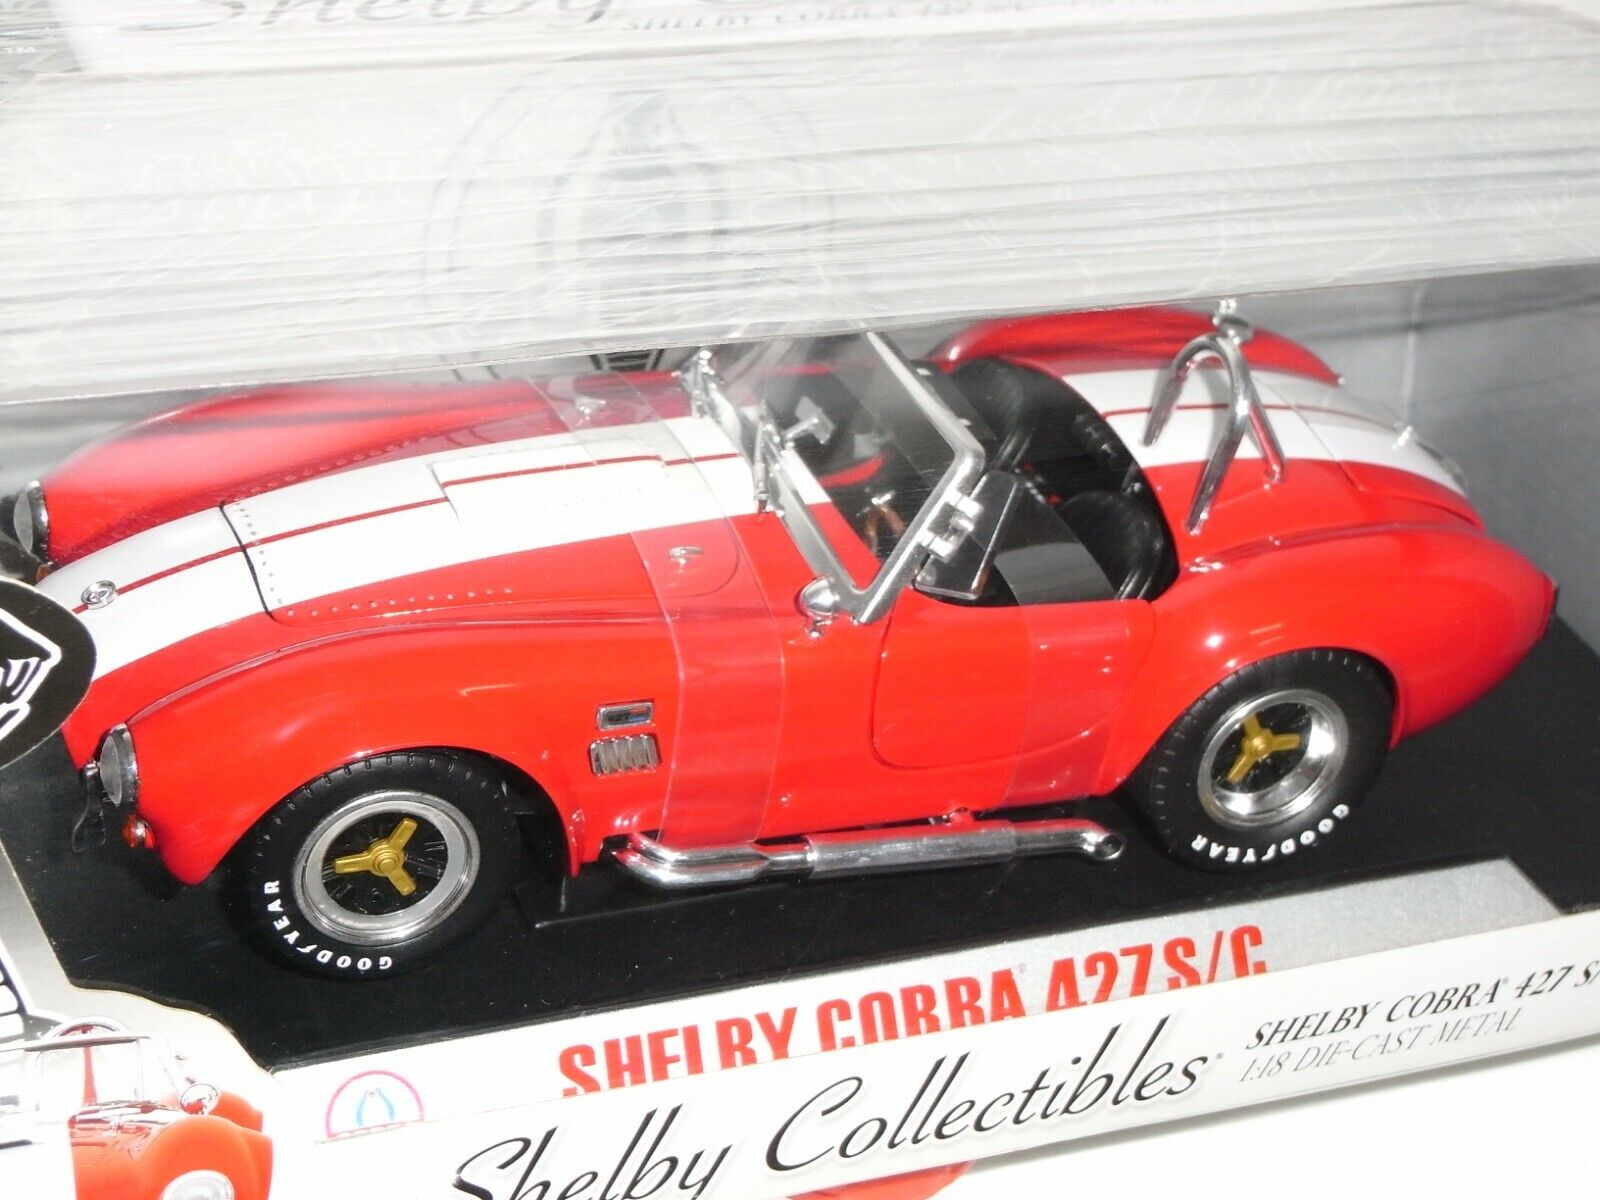 SHELBY COBRA 427 S C 1968  SHELBY COLLECTIBLES rouge 1 18 RAREZA